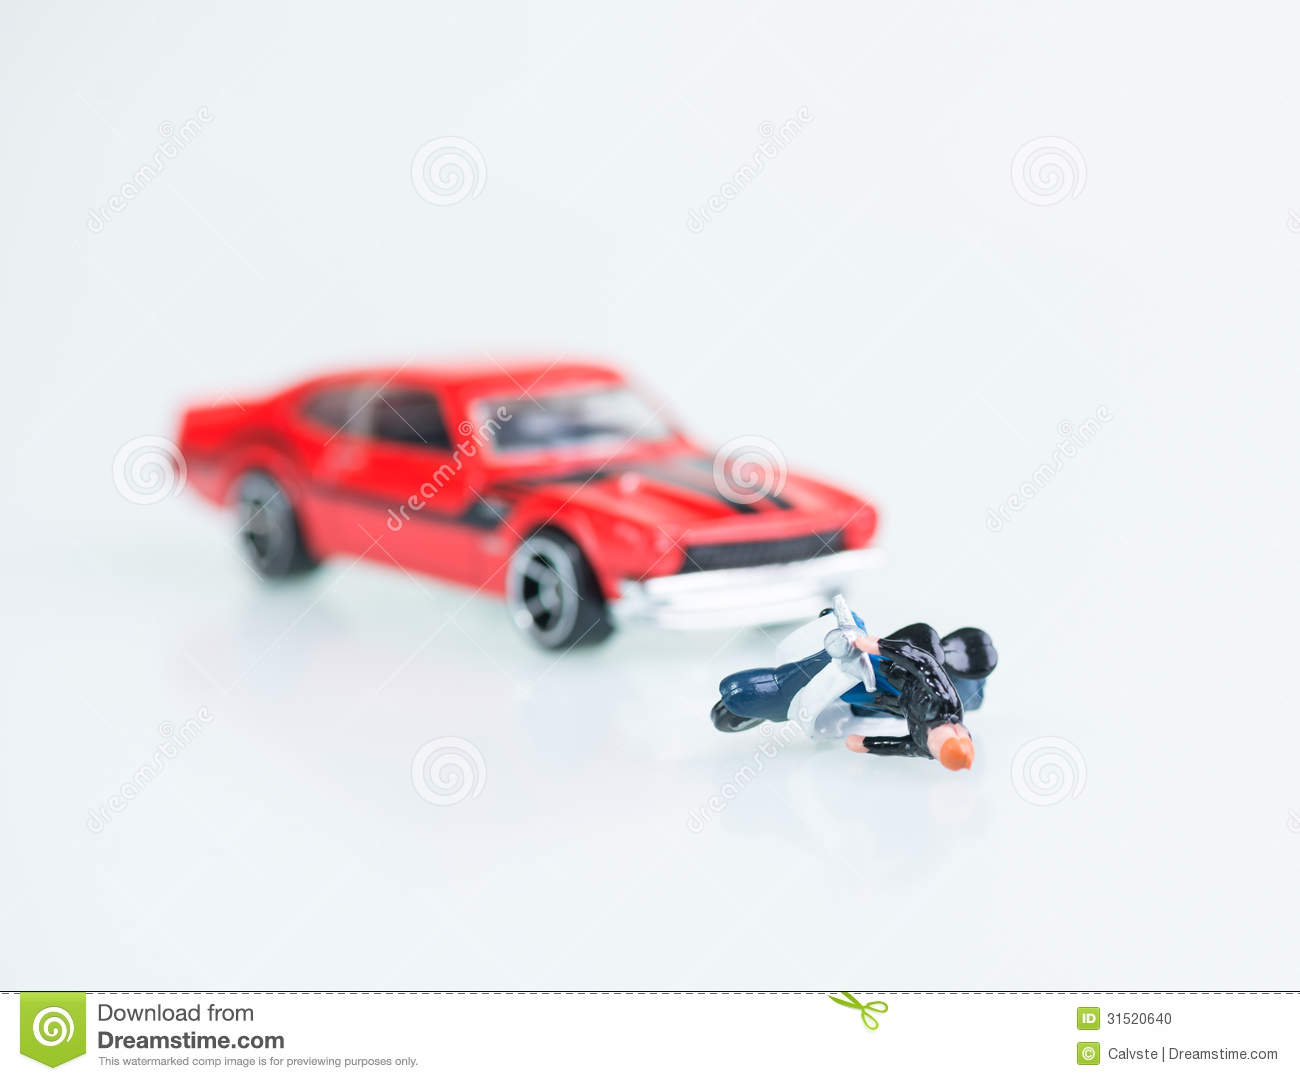 Motor Vehicle Collision Accident Stock Photo Image 31520640